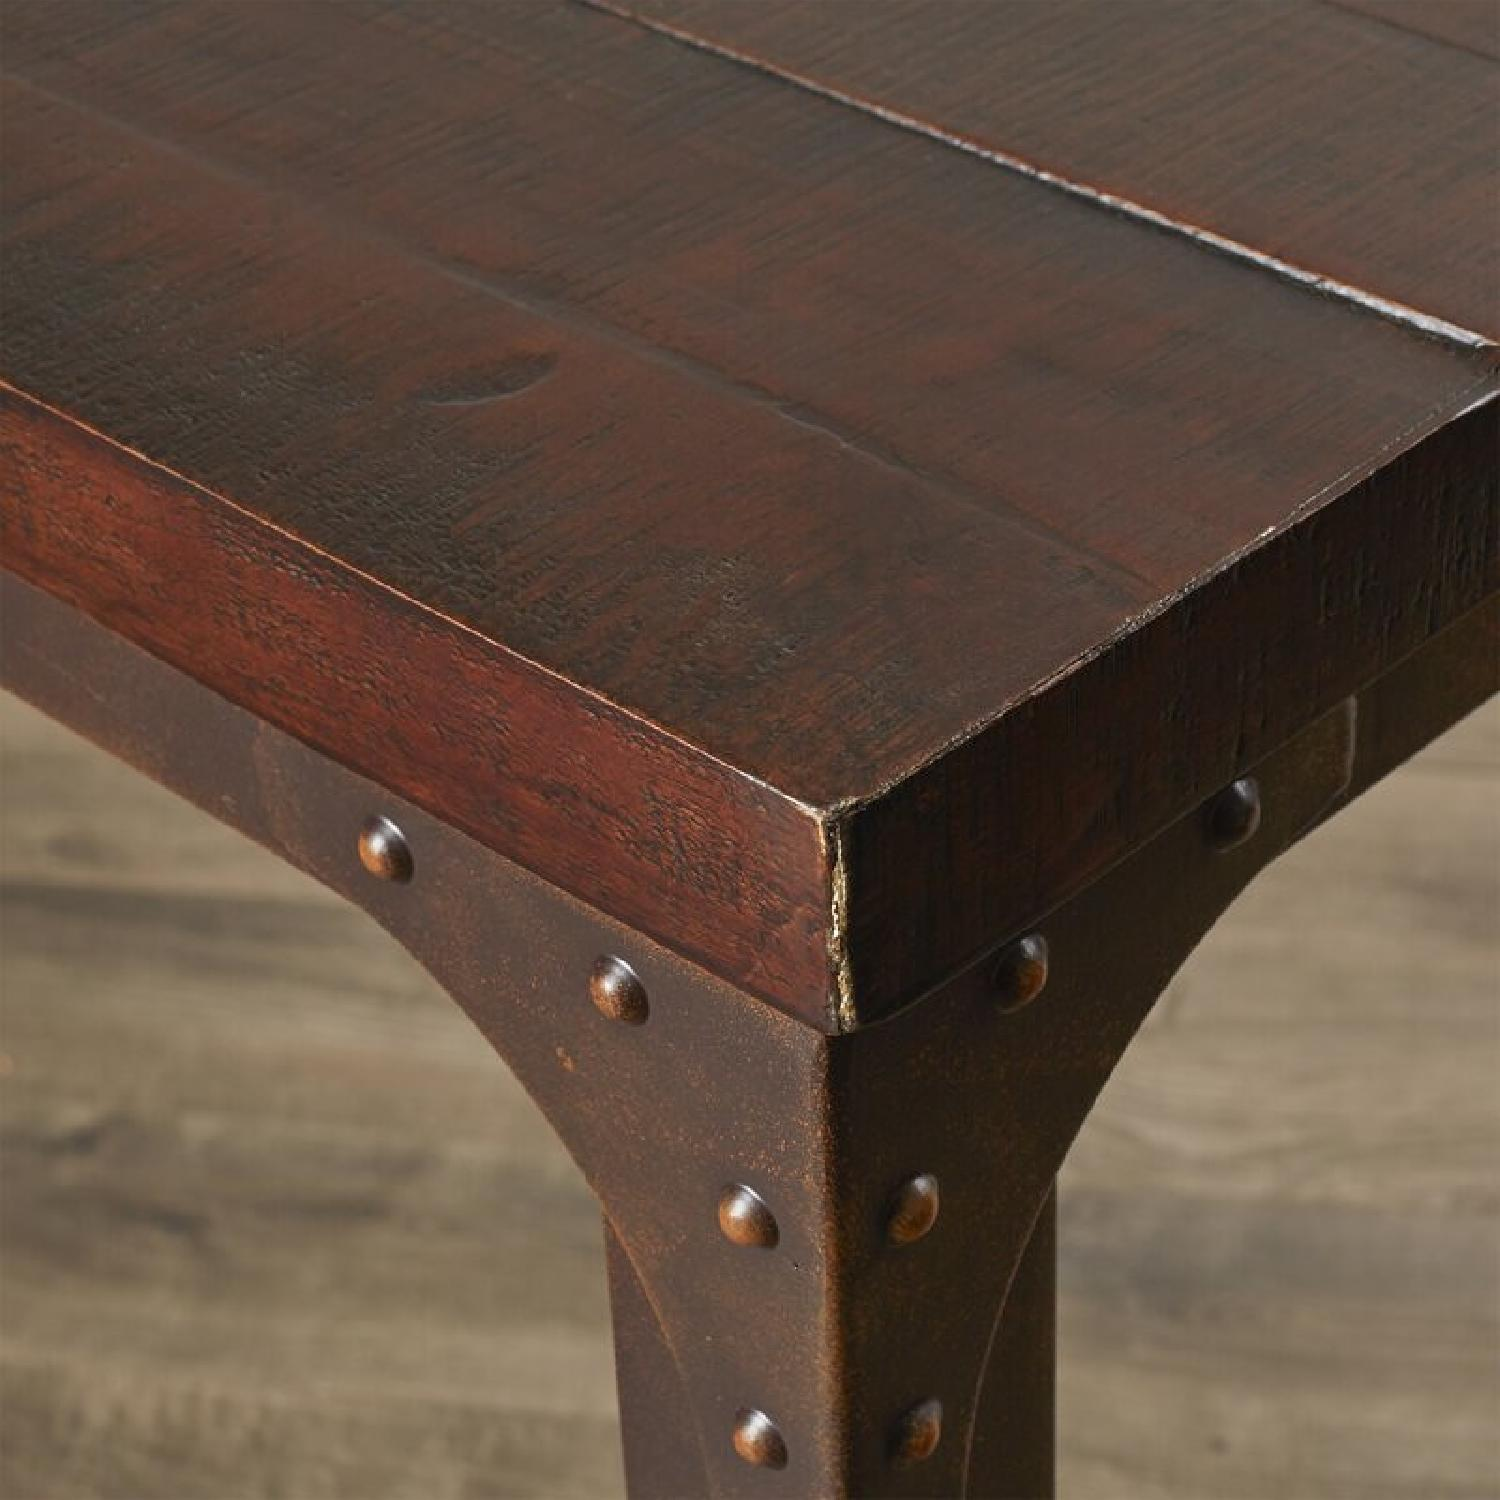 17 Stories D'Alotto Dining Table - image-3